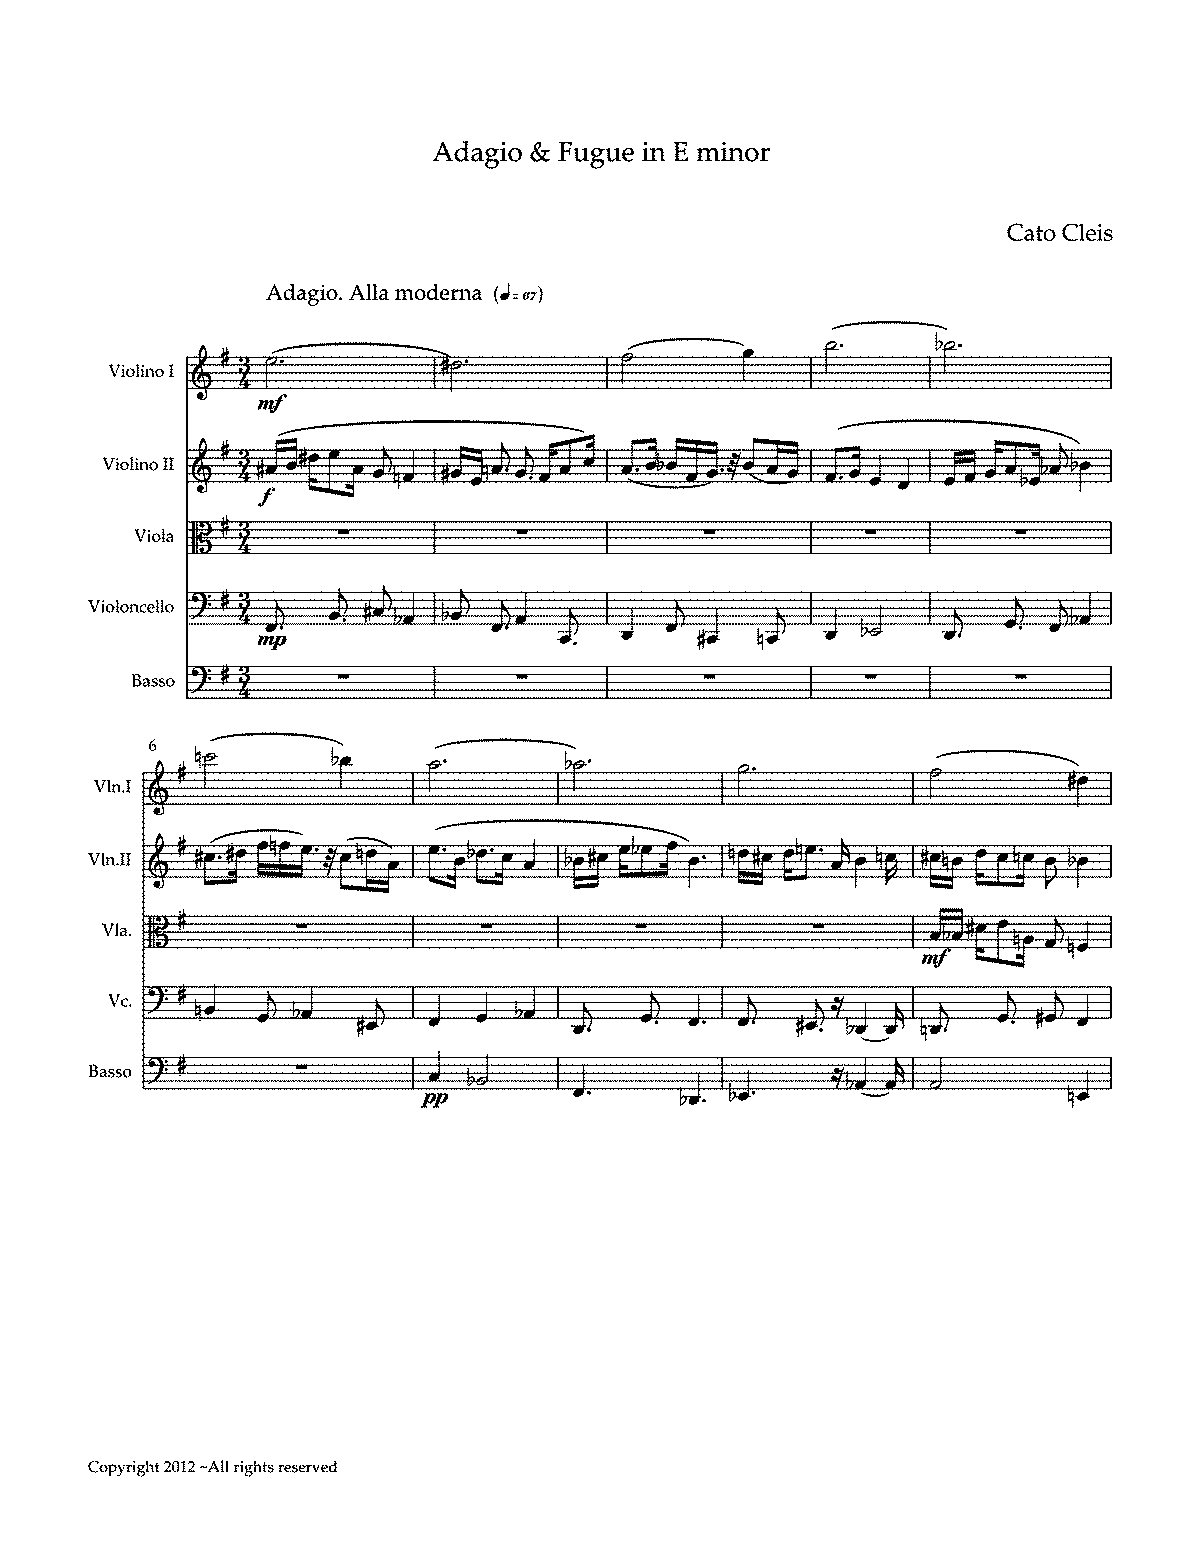 PMLP423003-Adagio & Fugue in E minor by Cato Cleis.pdf